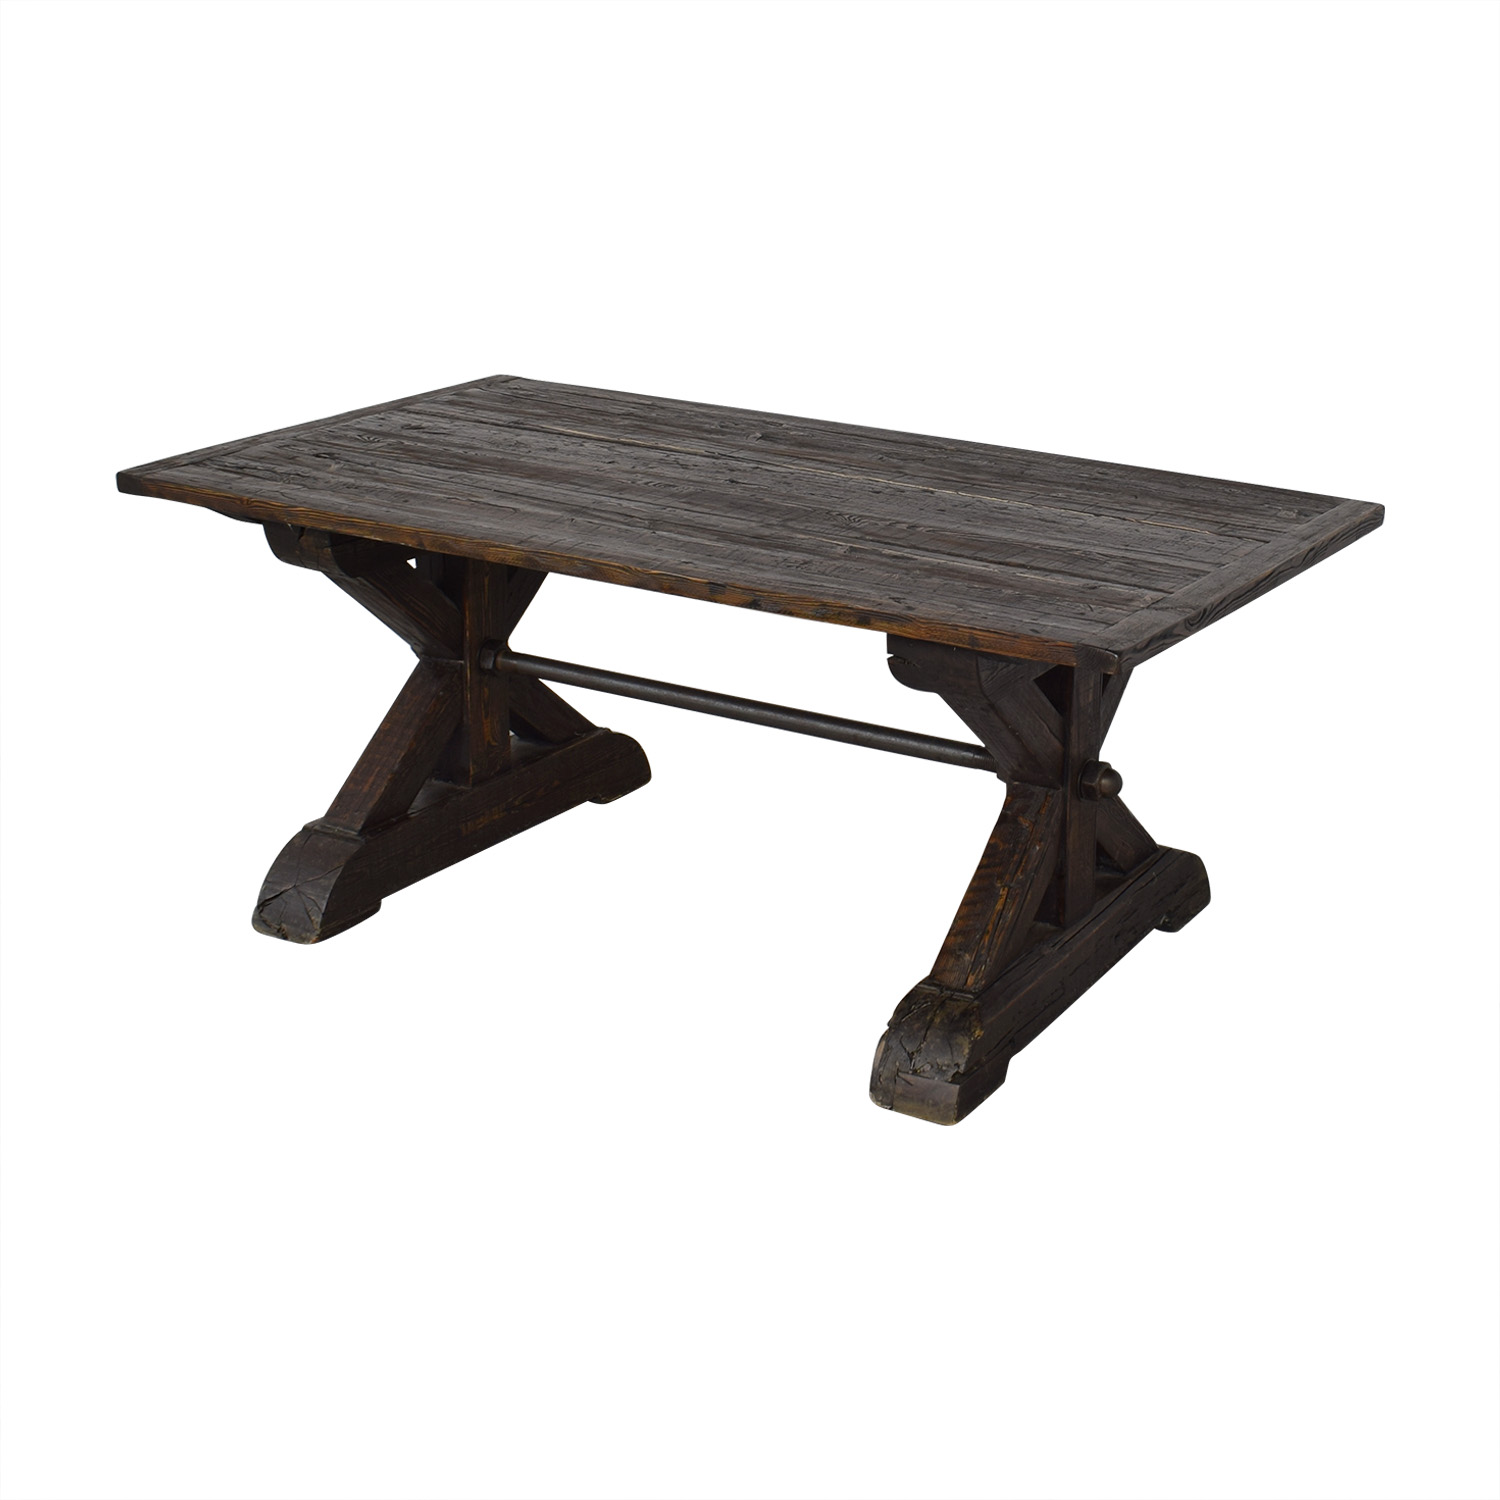 Restoration Hardware Restoration Hardware Dinner Table pa